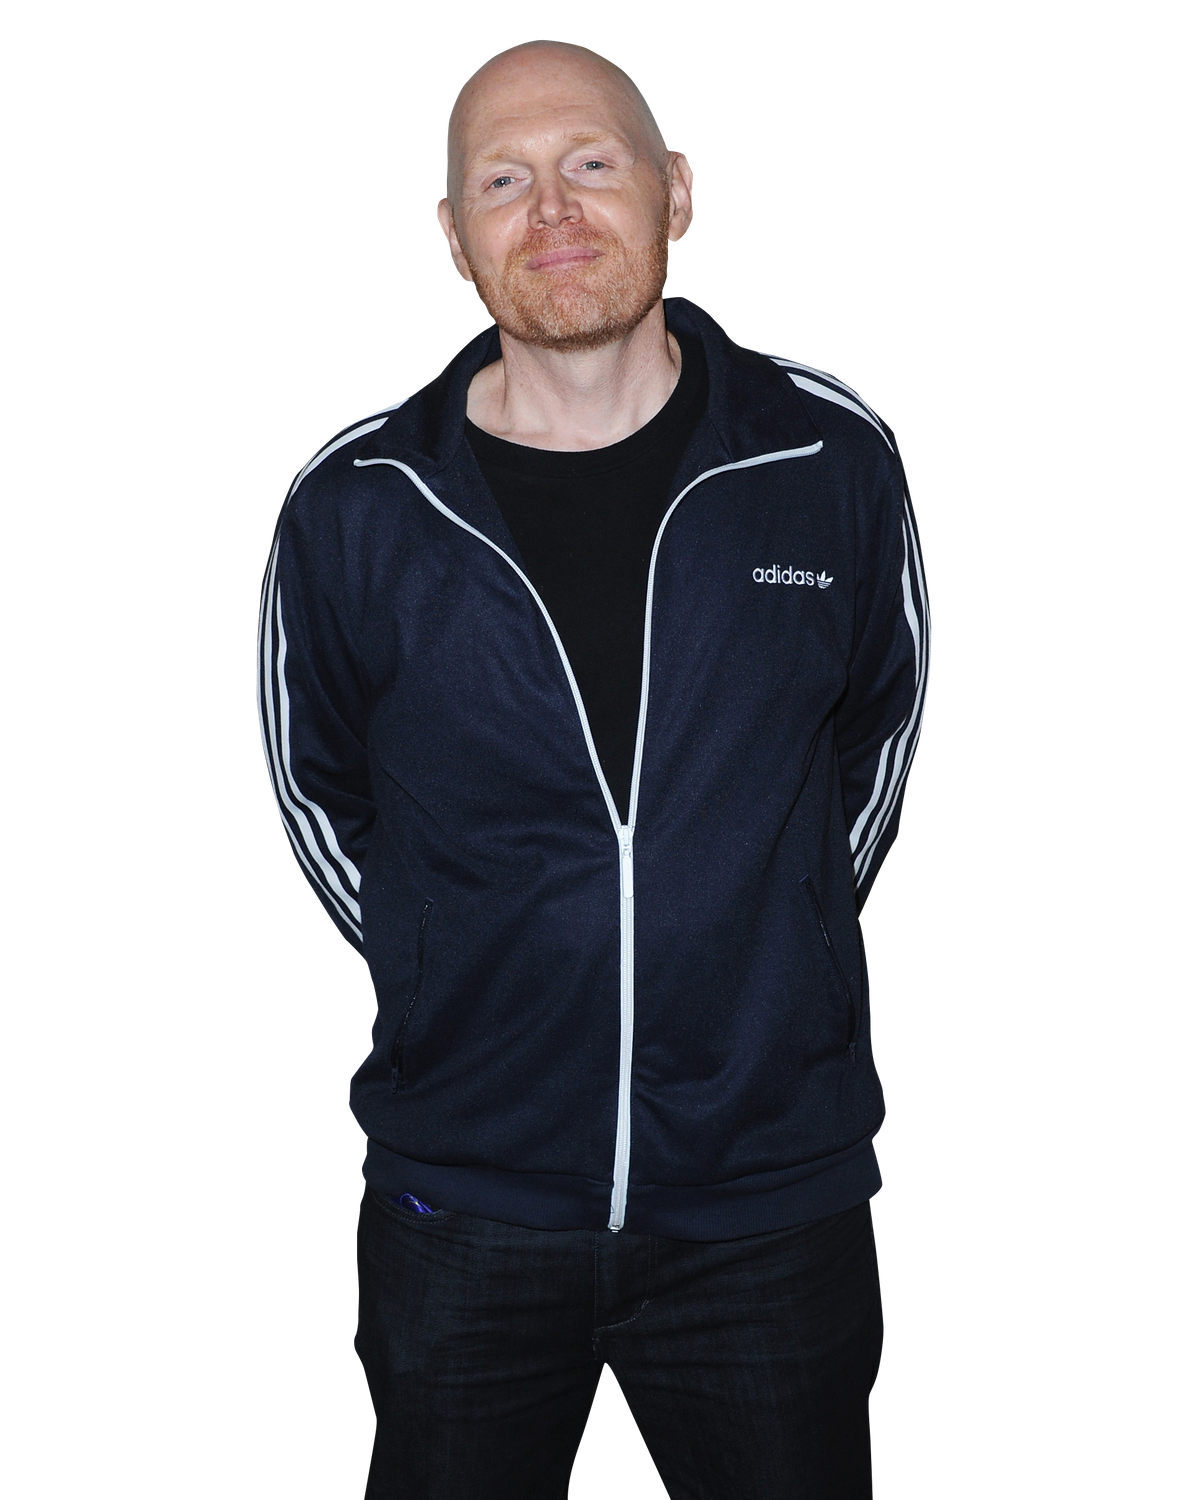 Interview Bill Burr On The King Of Staten Island